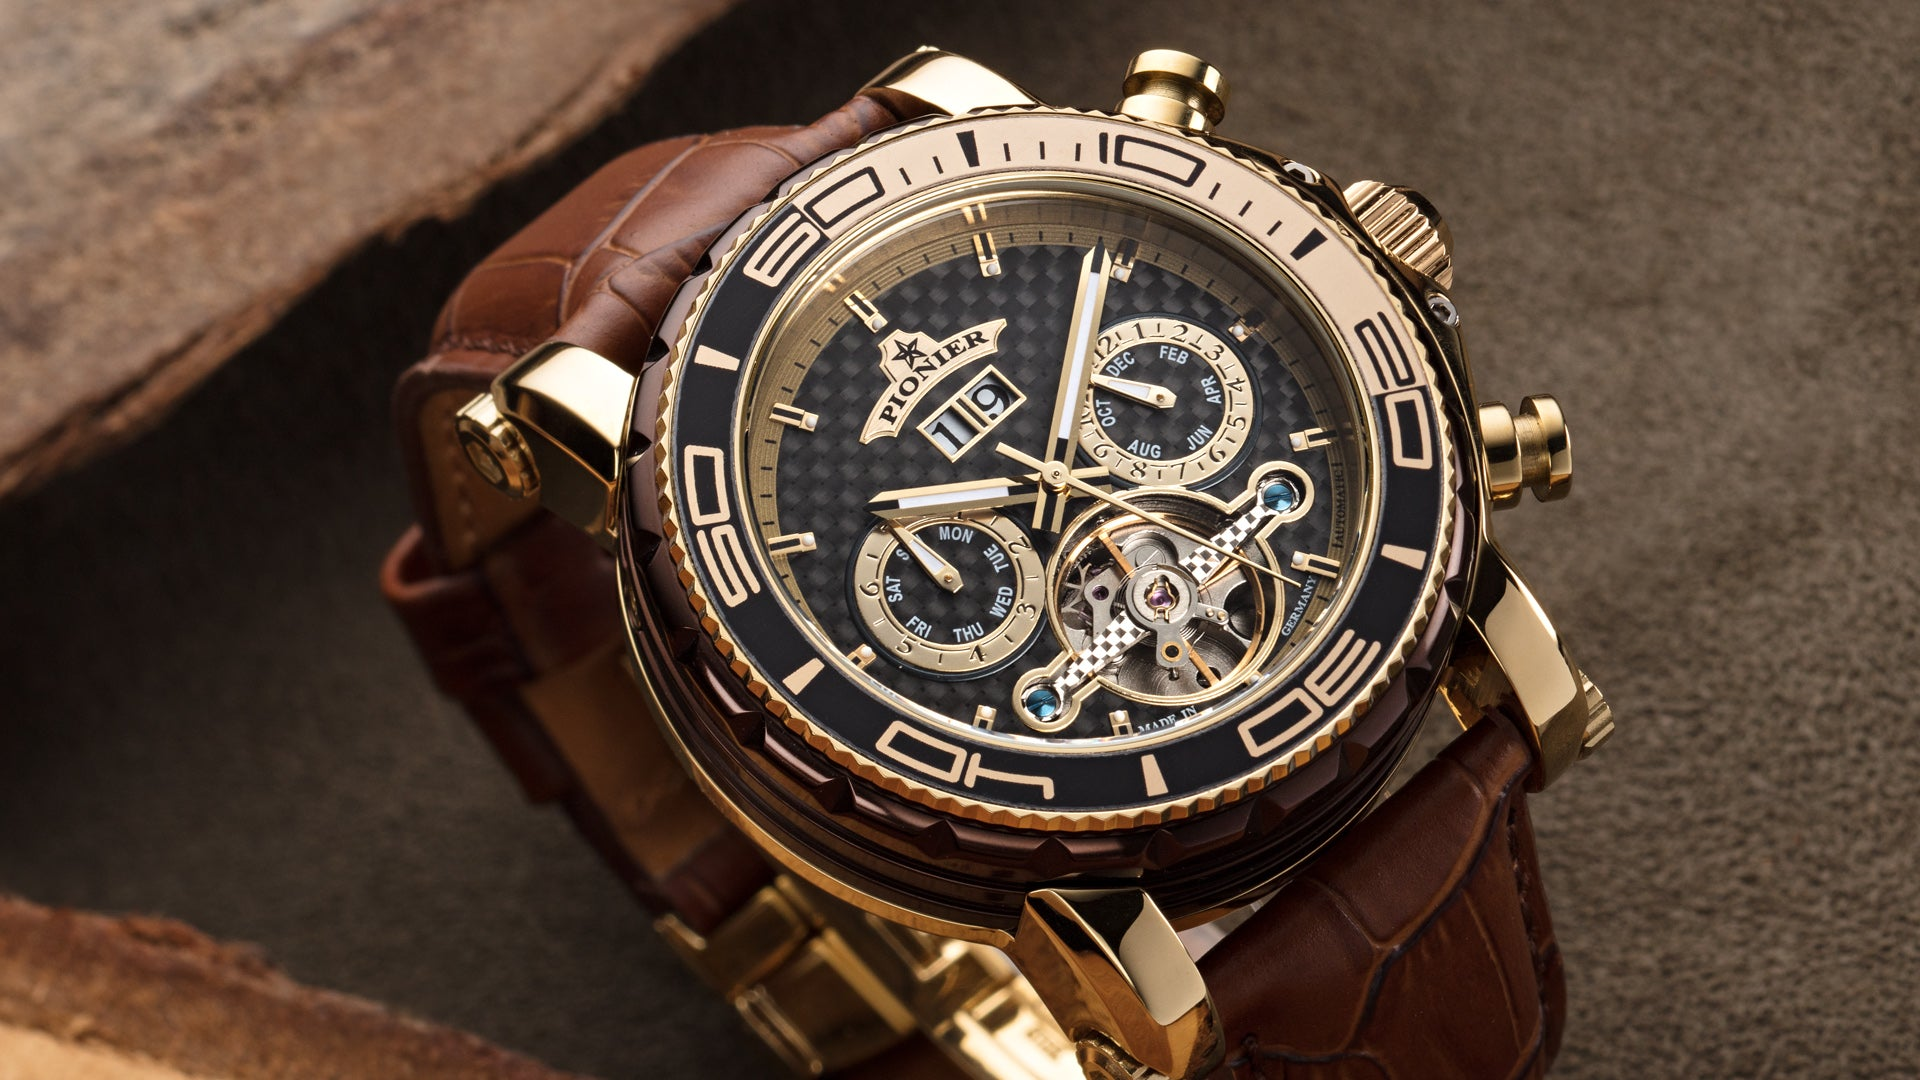 CAN I SHOWER IN MY MECHANICAL WATCH?